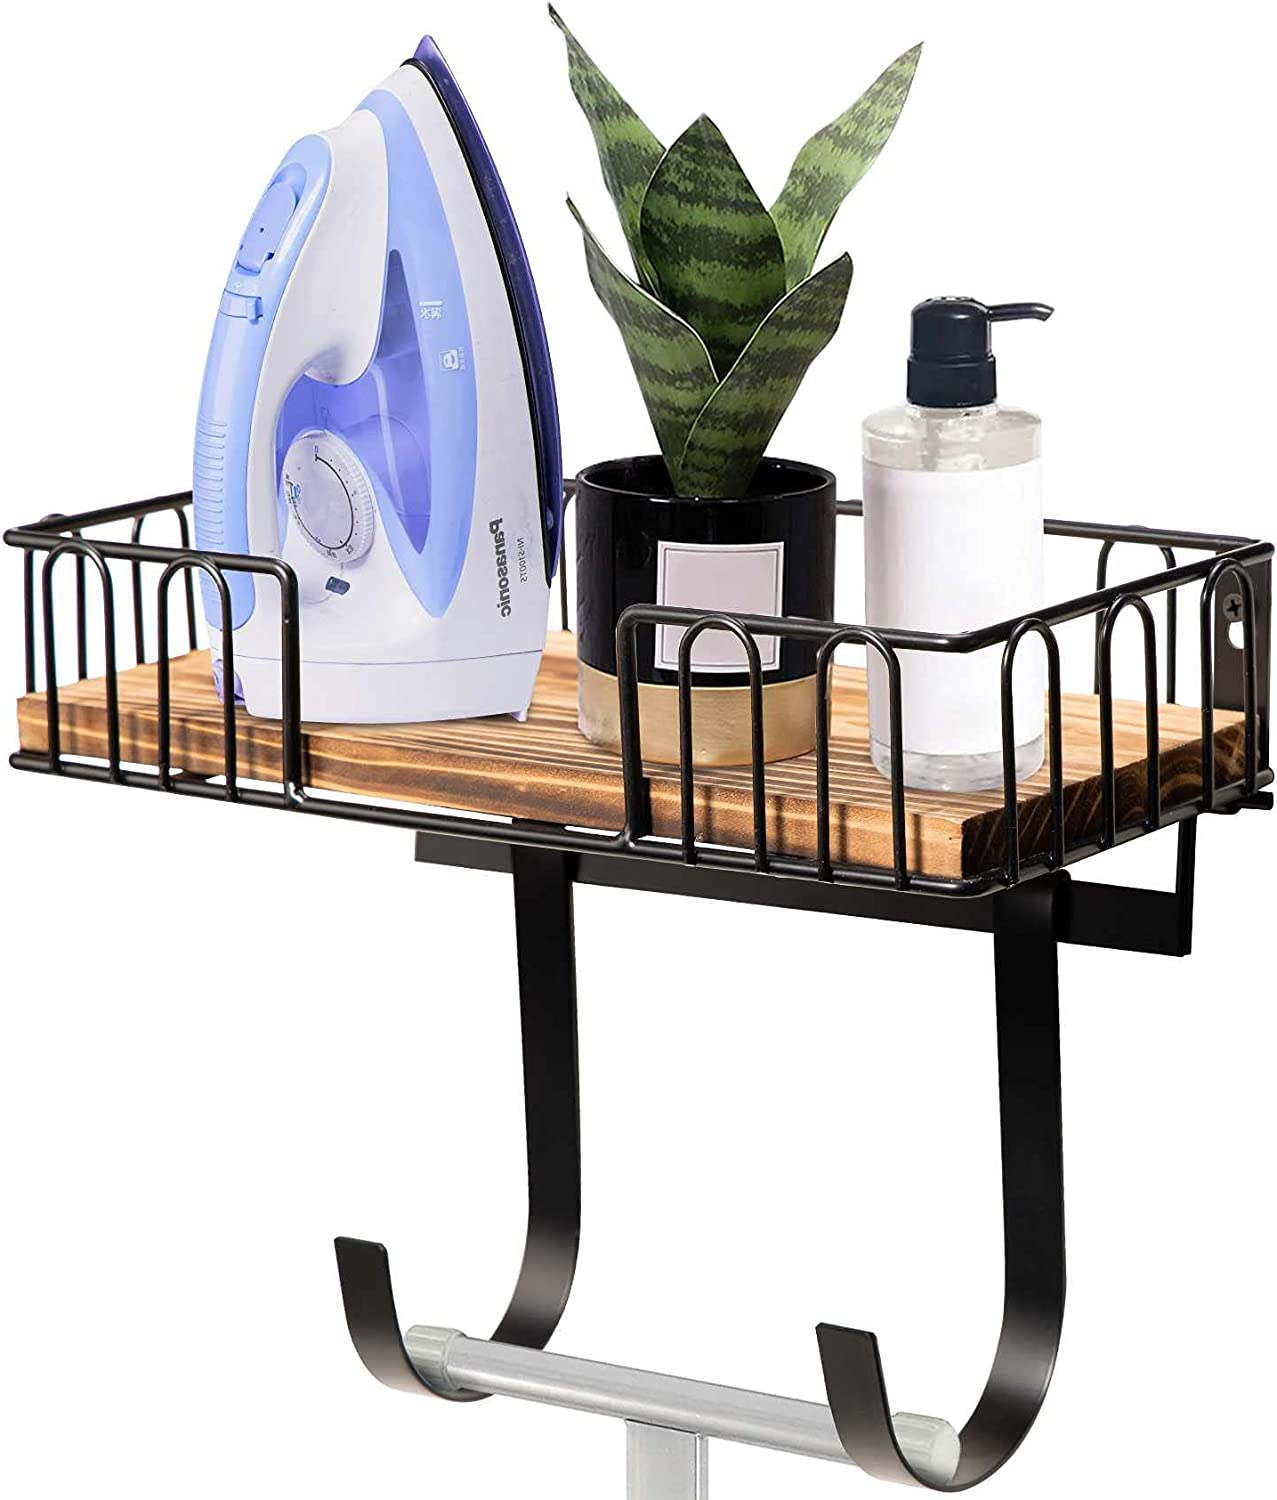 DB Ironing Board Hanger Wall Mount, Ironing and Iron Board Wall Mount with Shelf, Metal Iron Holder Wall Mount with Large Storage Wooden Base Basket & Removable Hooks, Iron Board Hanger Laundry Room